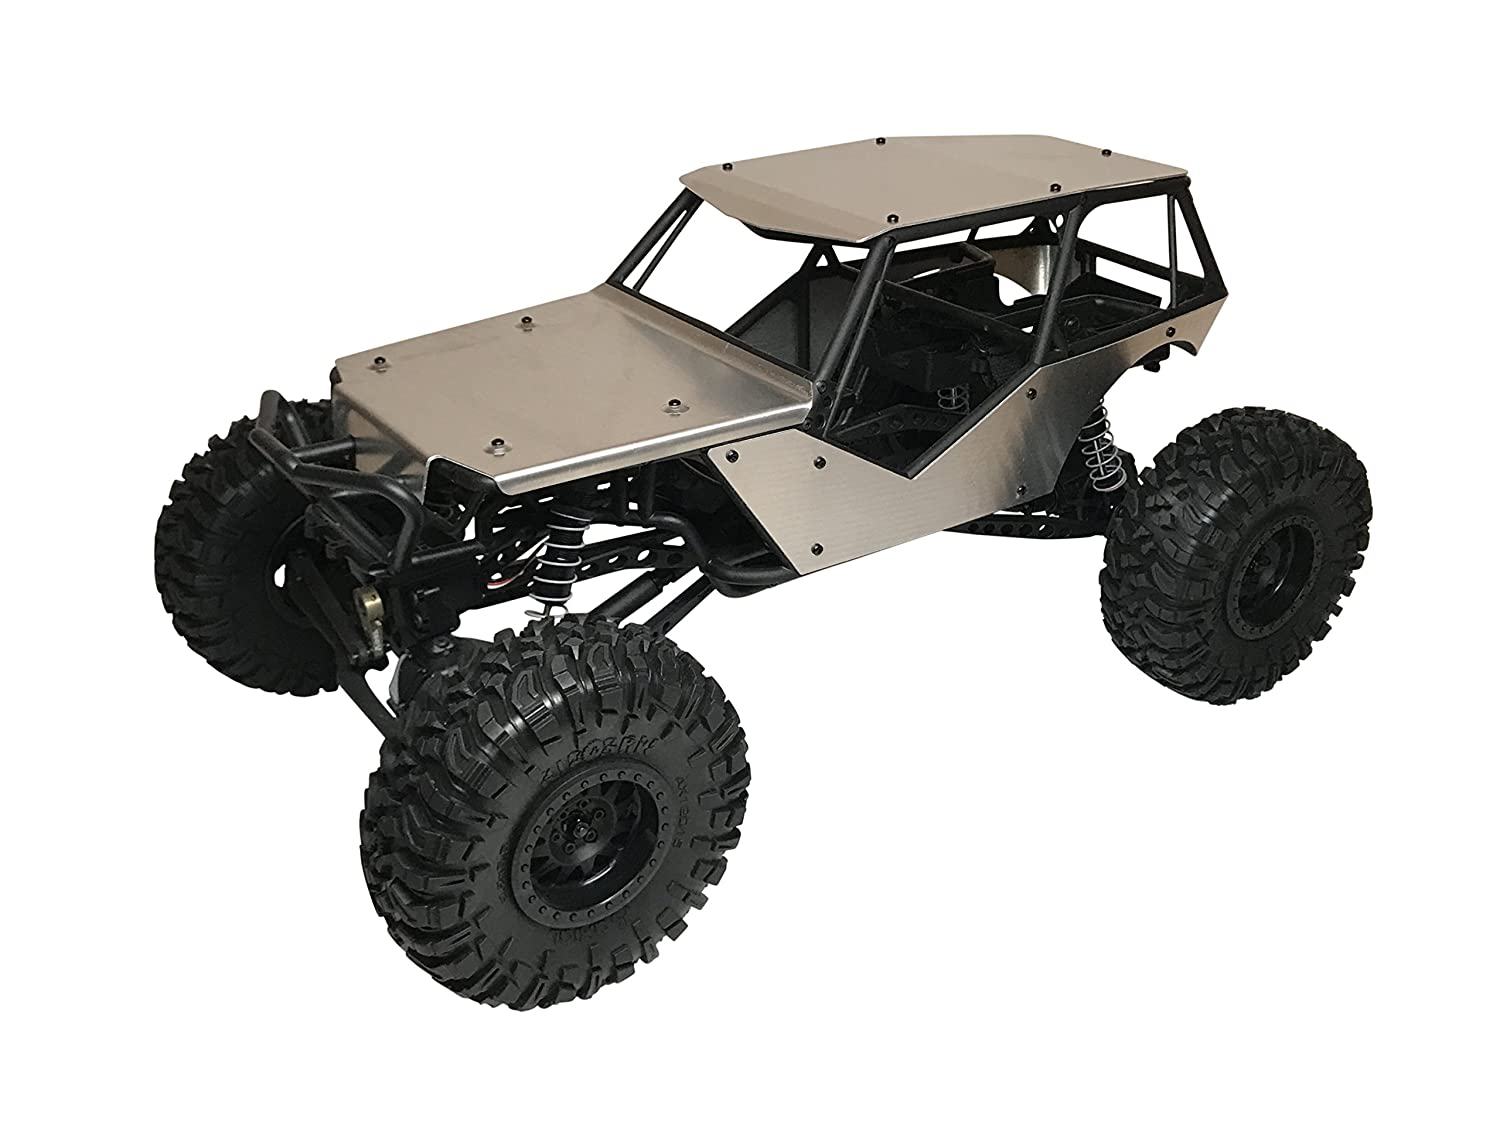 Axial Racing Wraithアルミボディパネルキットwith Full屋根   B076Z3LCBX